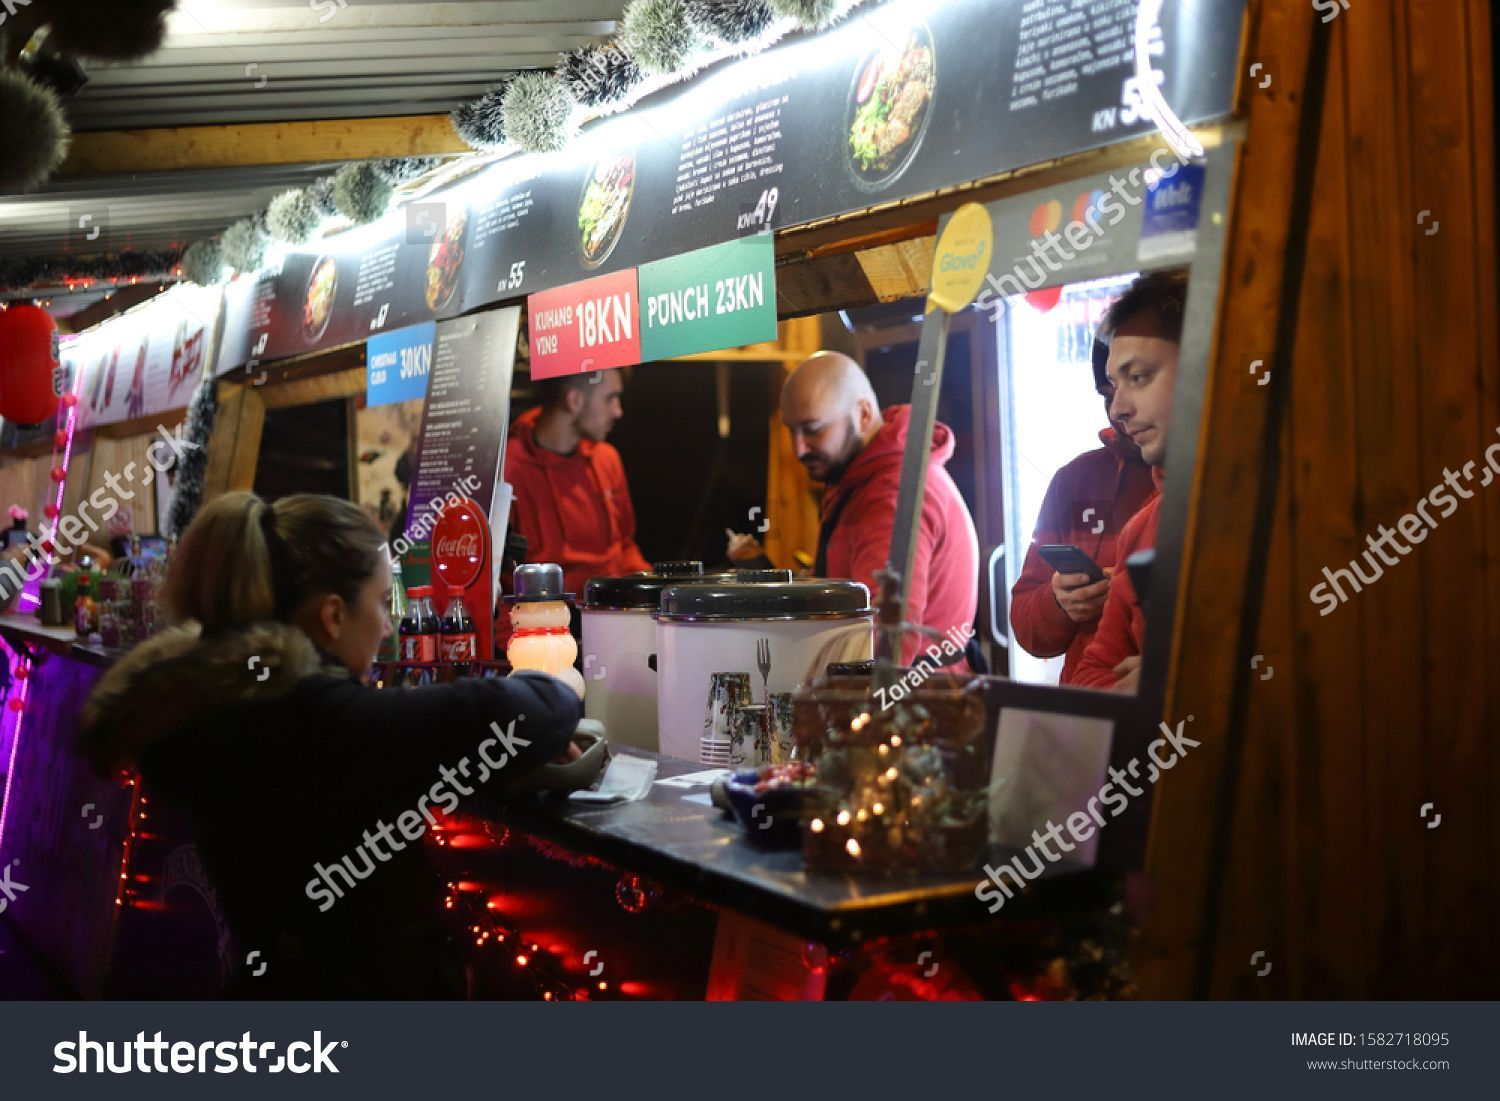 Zagreb Croatia 12u002f07u002f2019 Food And Drink Stands At Strossmayer Square During Advent In Zagreb